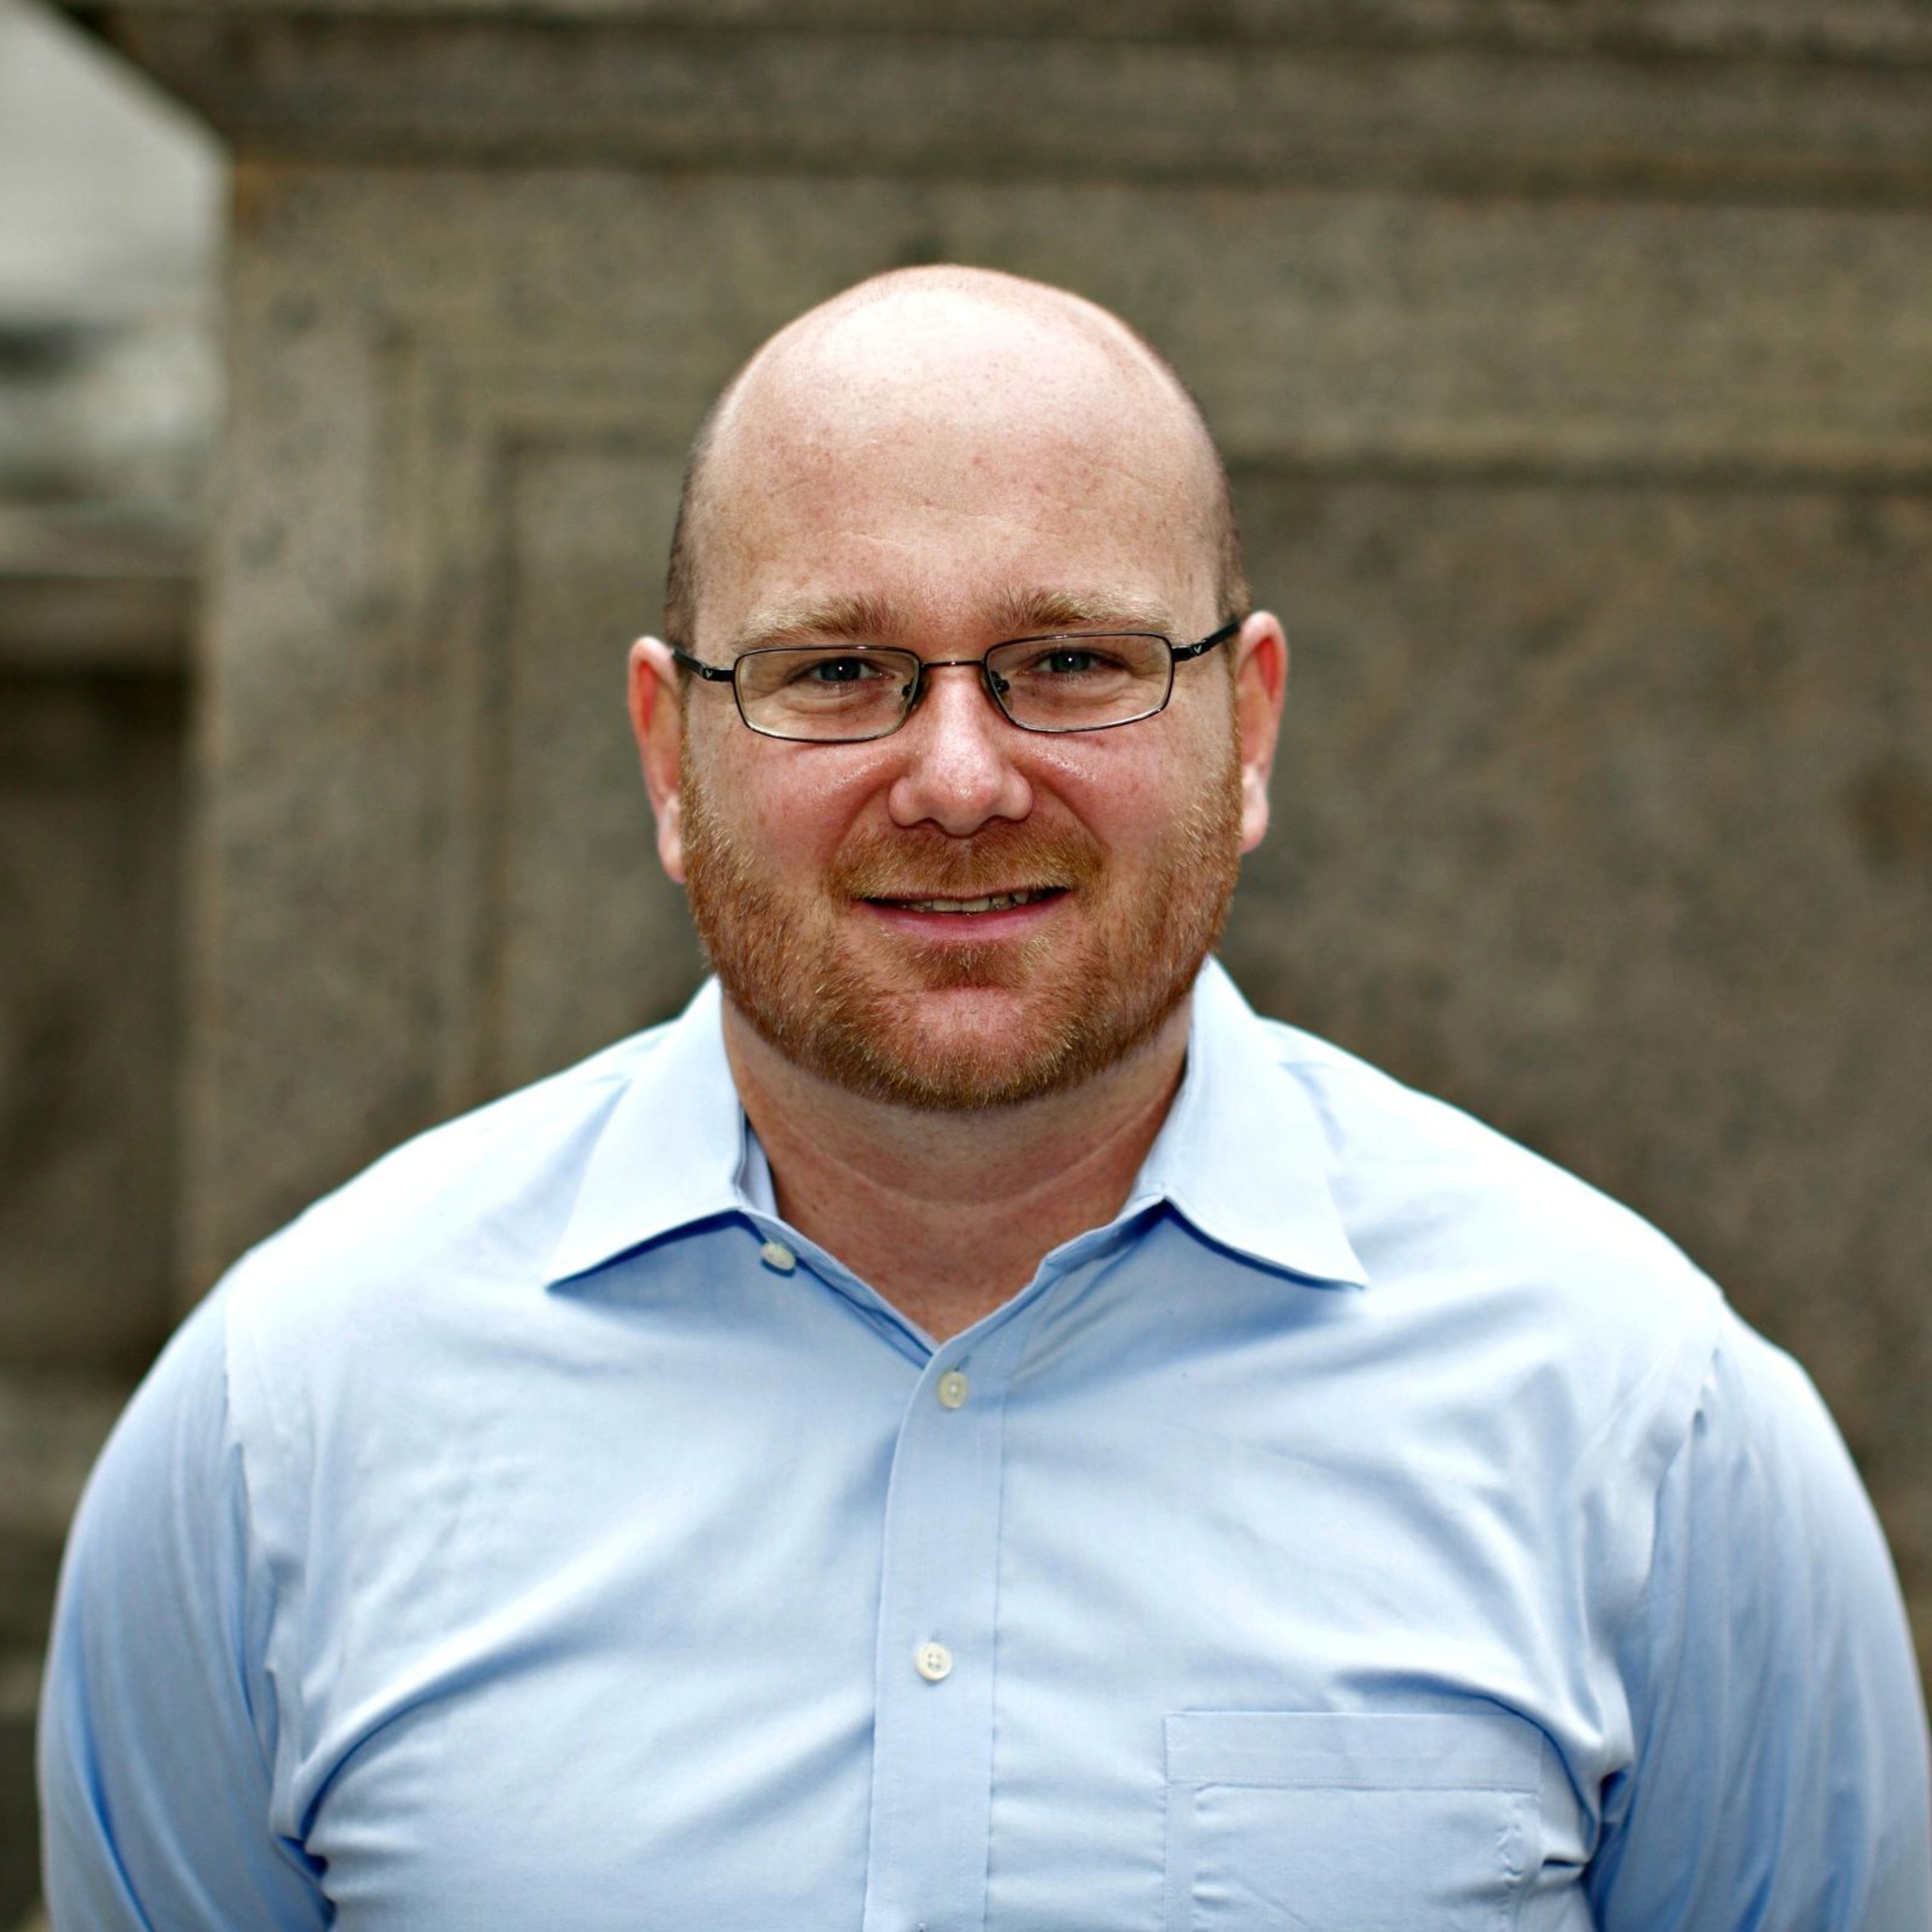 David Waring, co-founder of Fit Small Business.